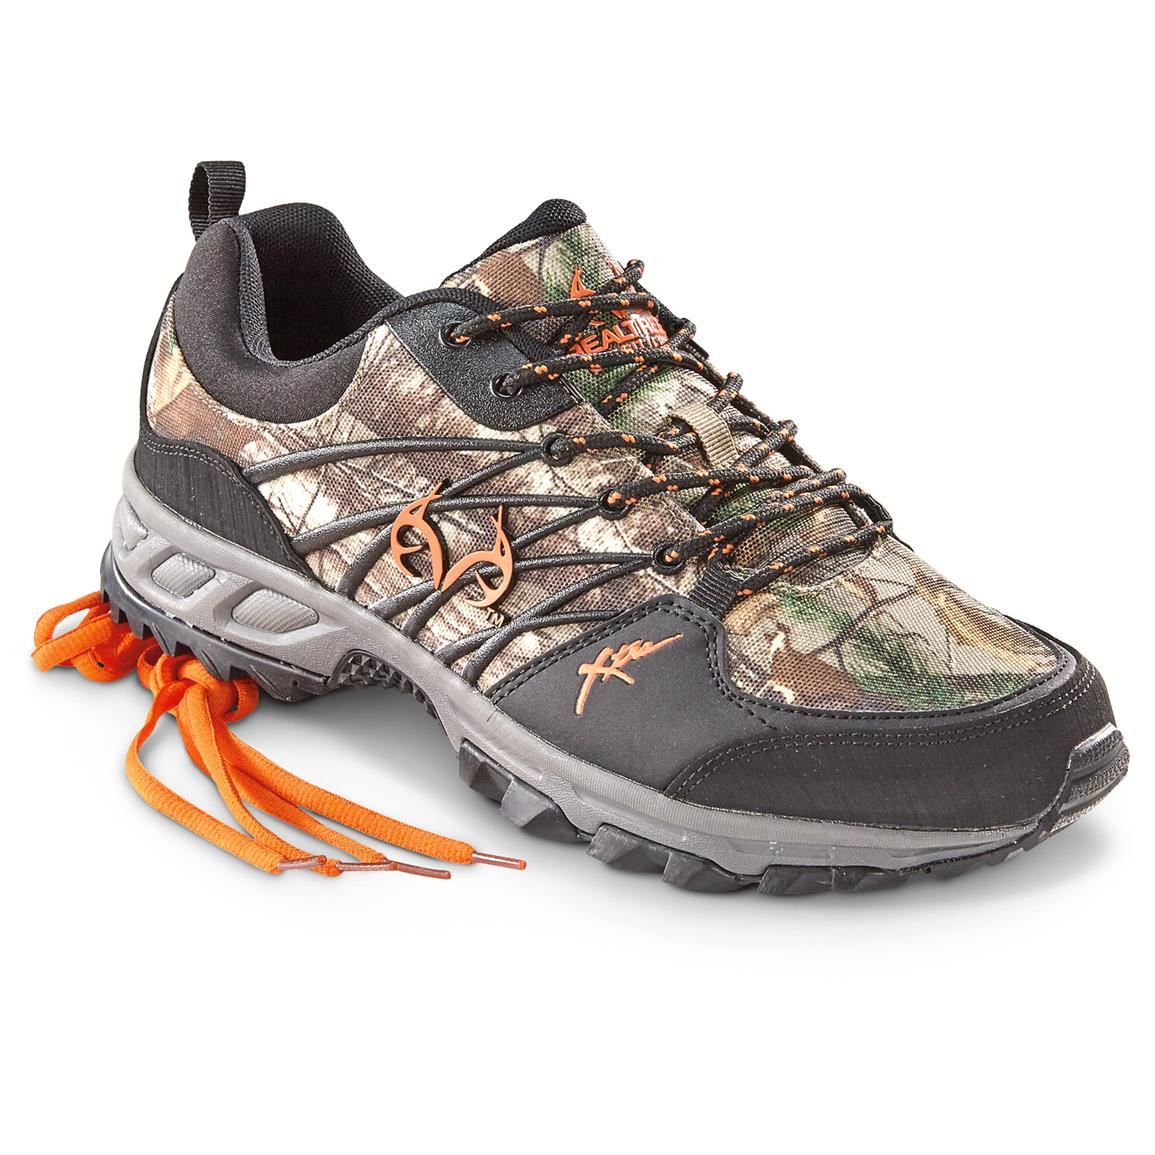 Realtree Men's Bobcat Sneakers, Black / Realtree Xtra